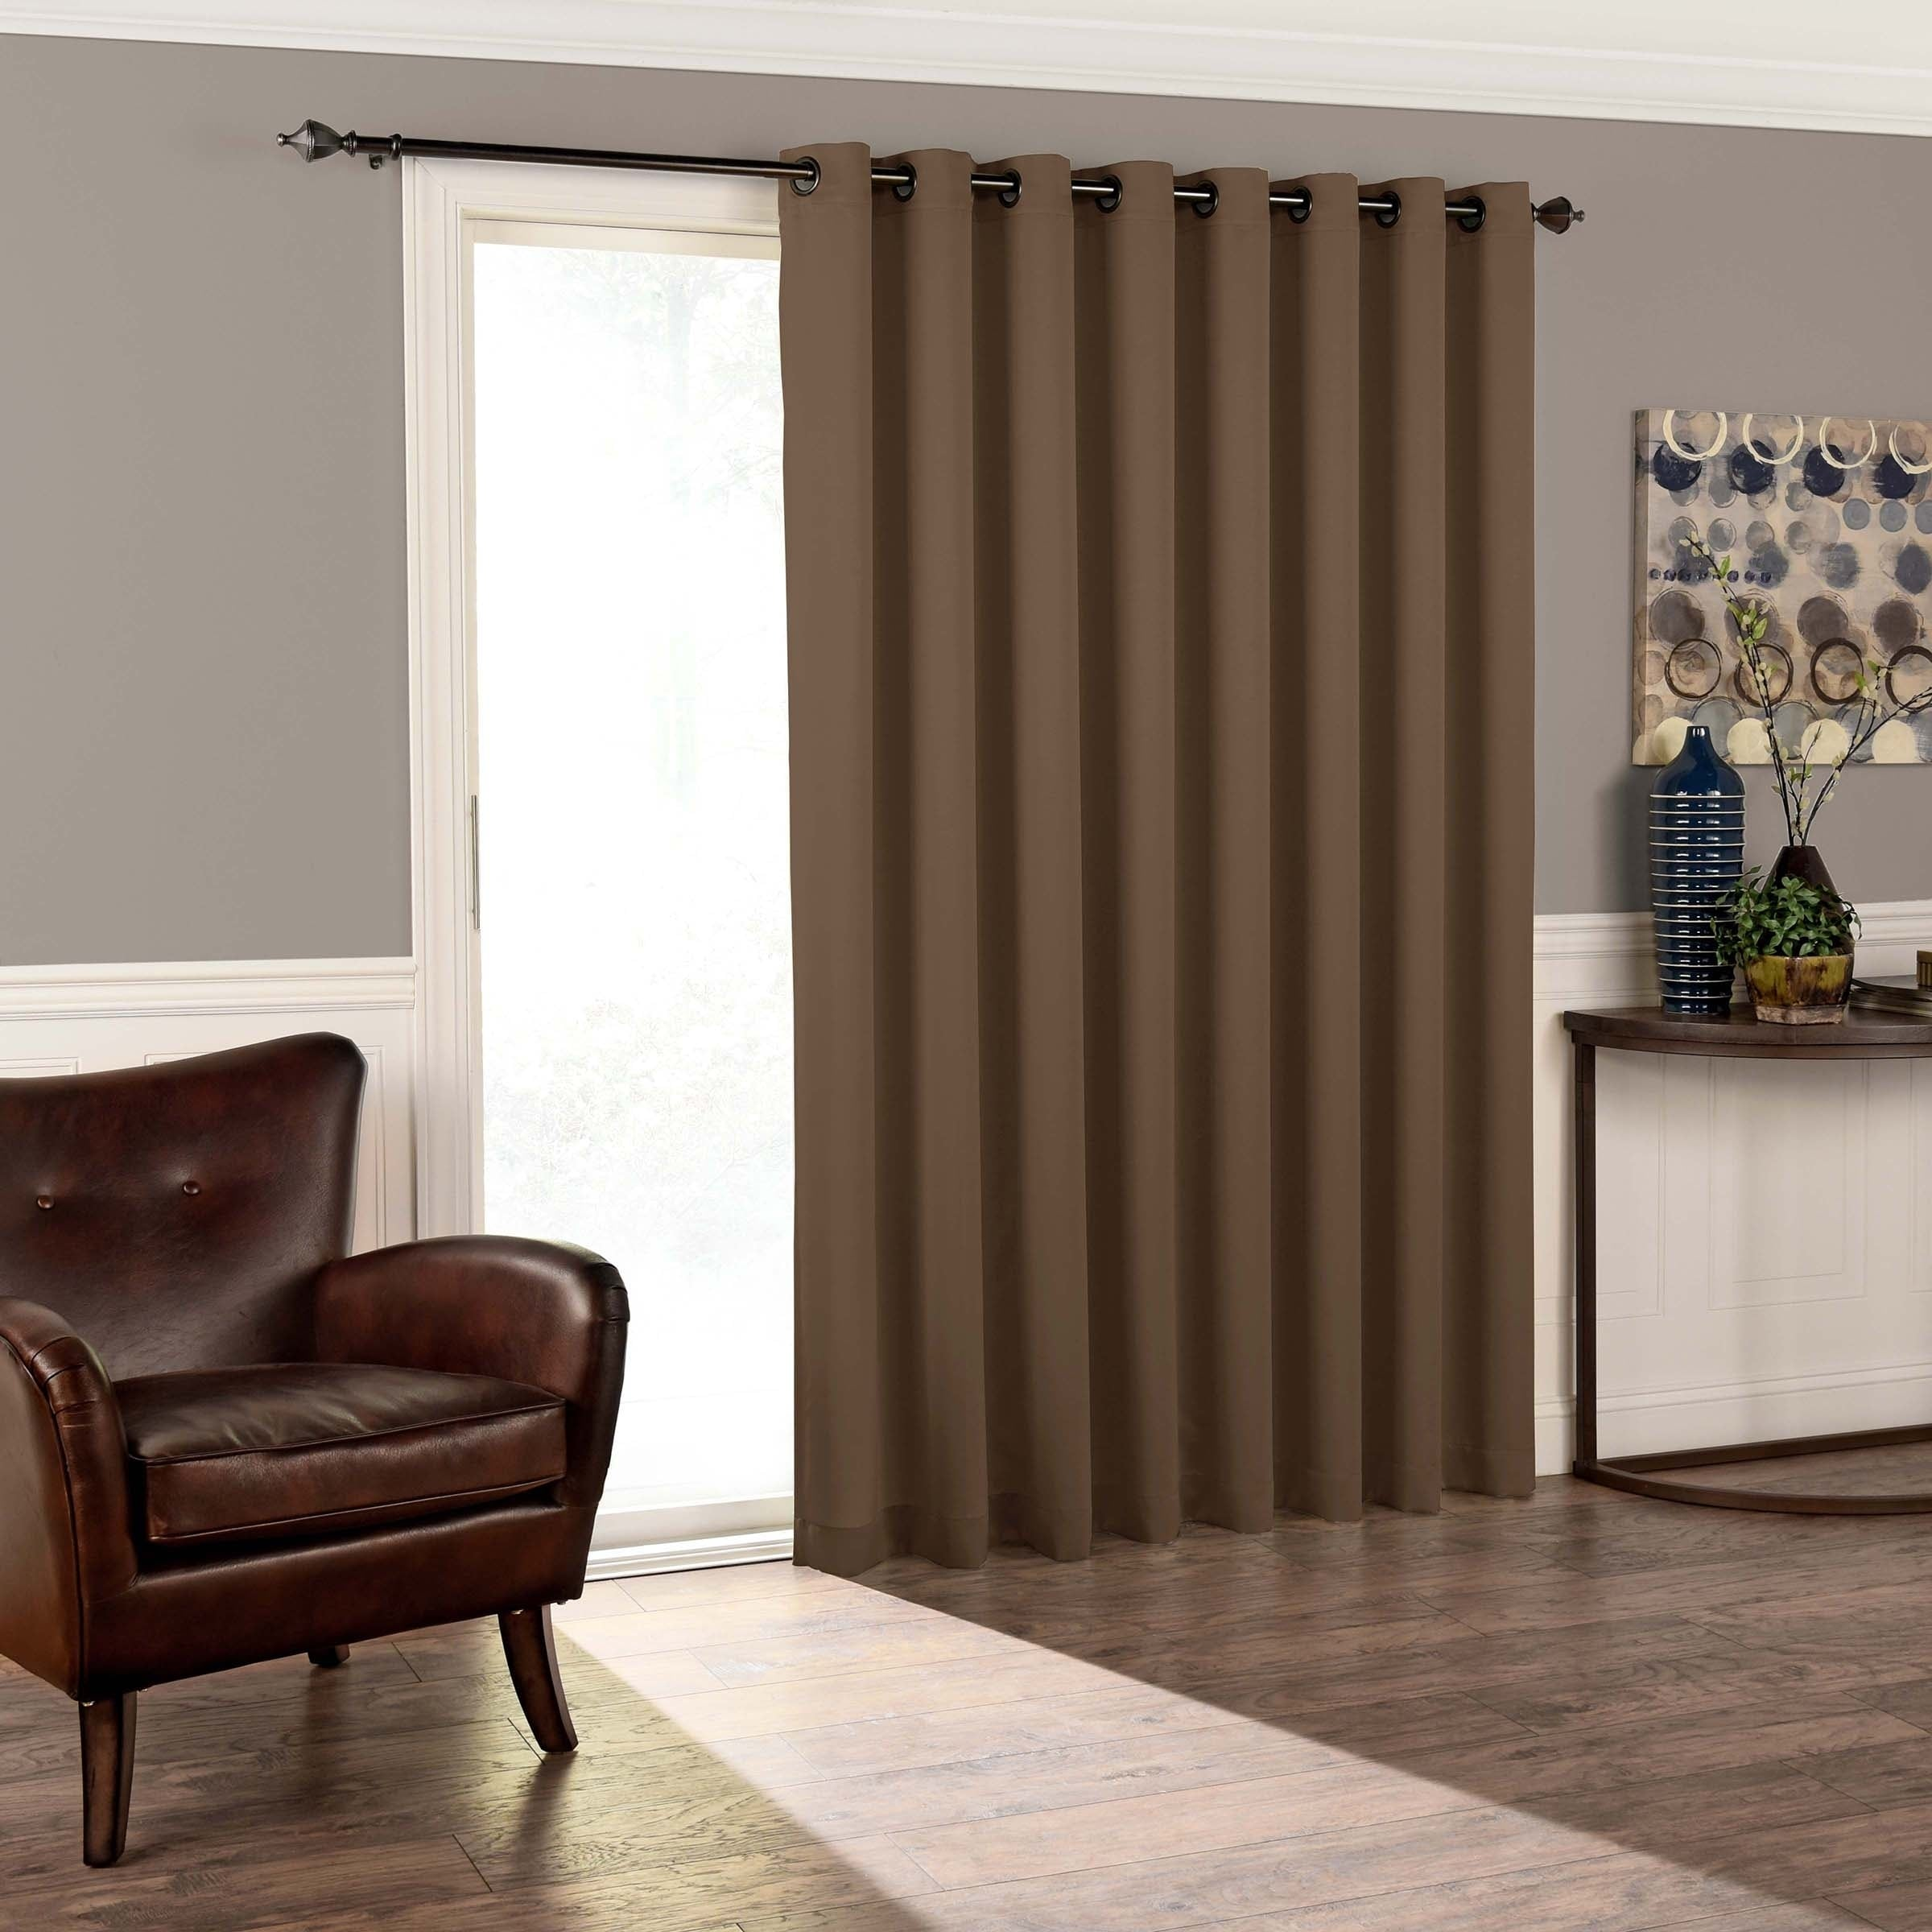 Eclipse Tricia Room Darkening Patio Door Panel  Free Shipping On